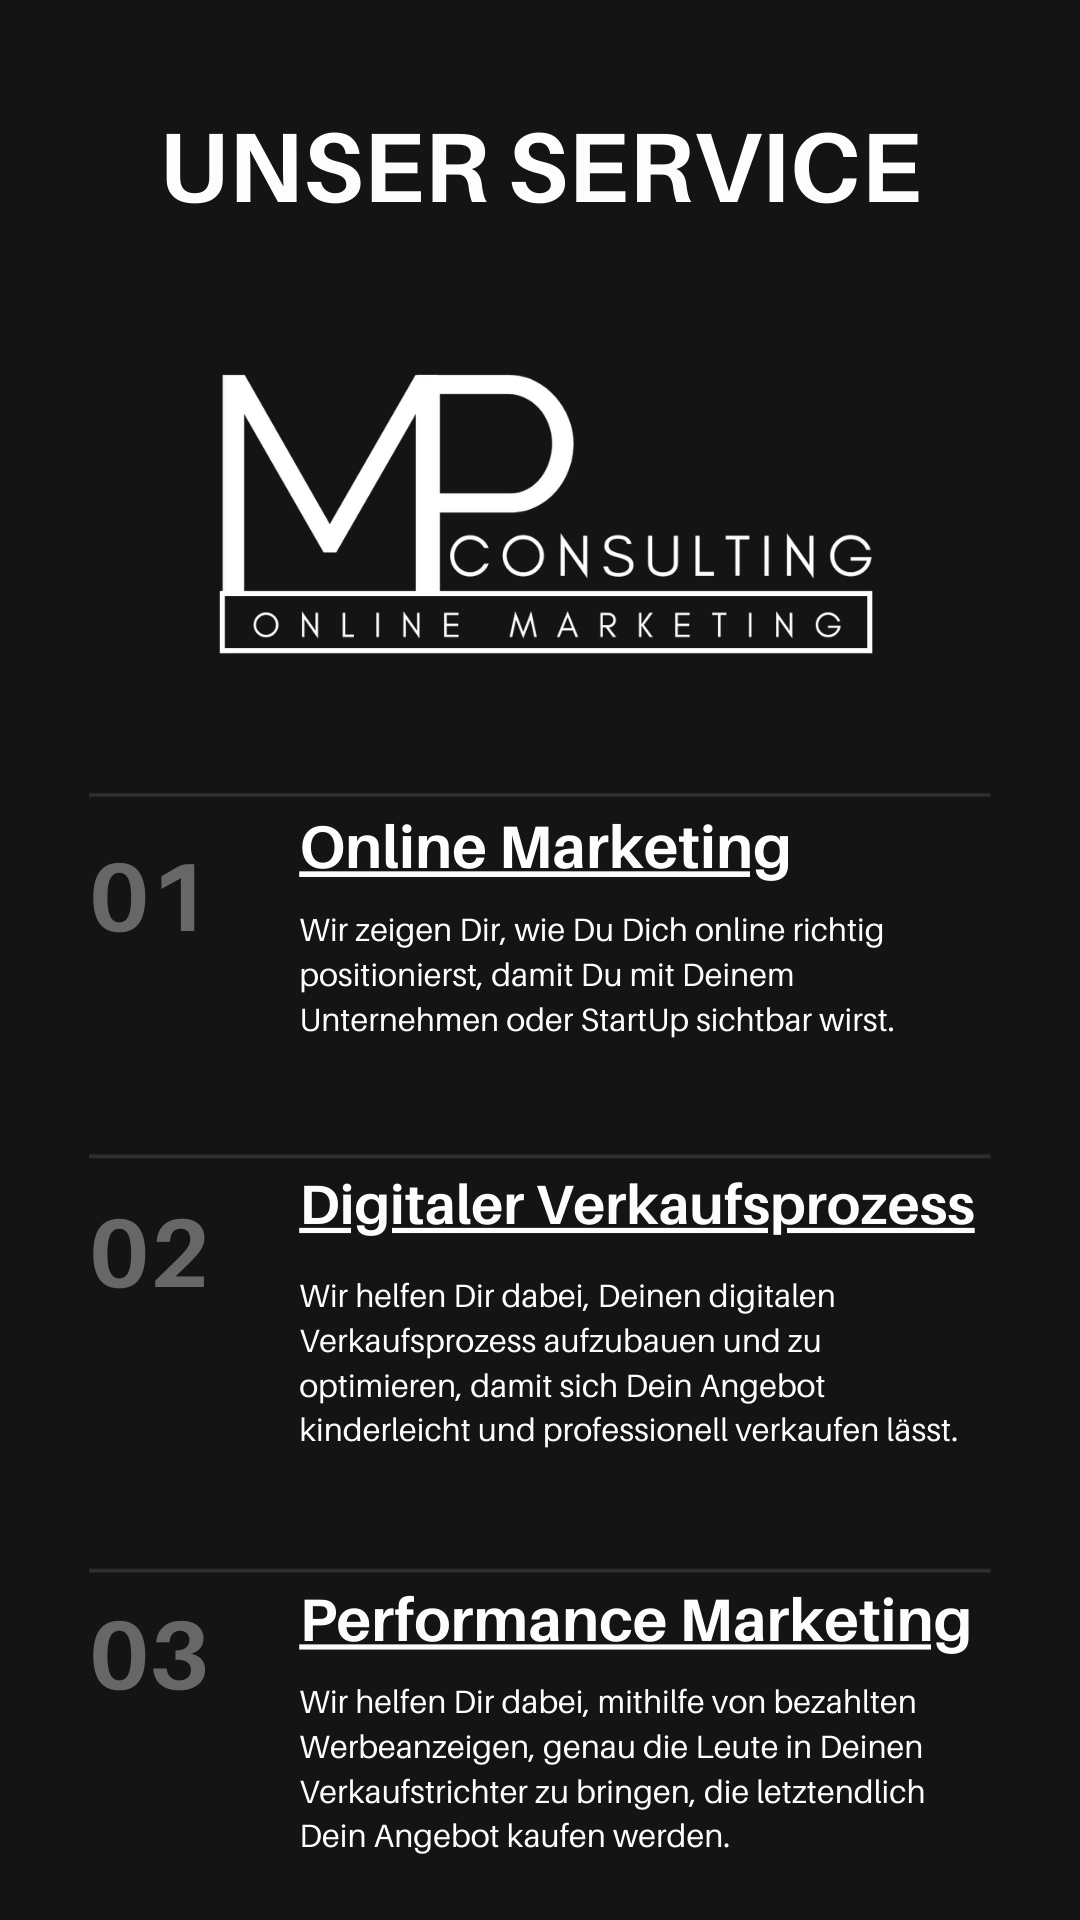 MP Online Consulting Service